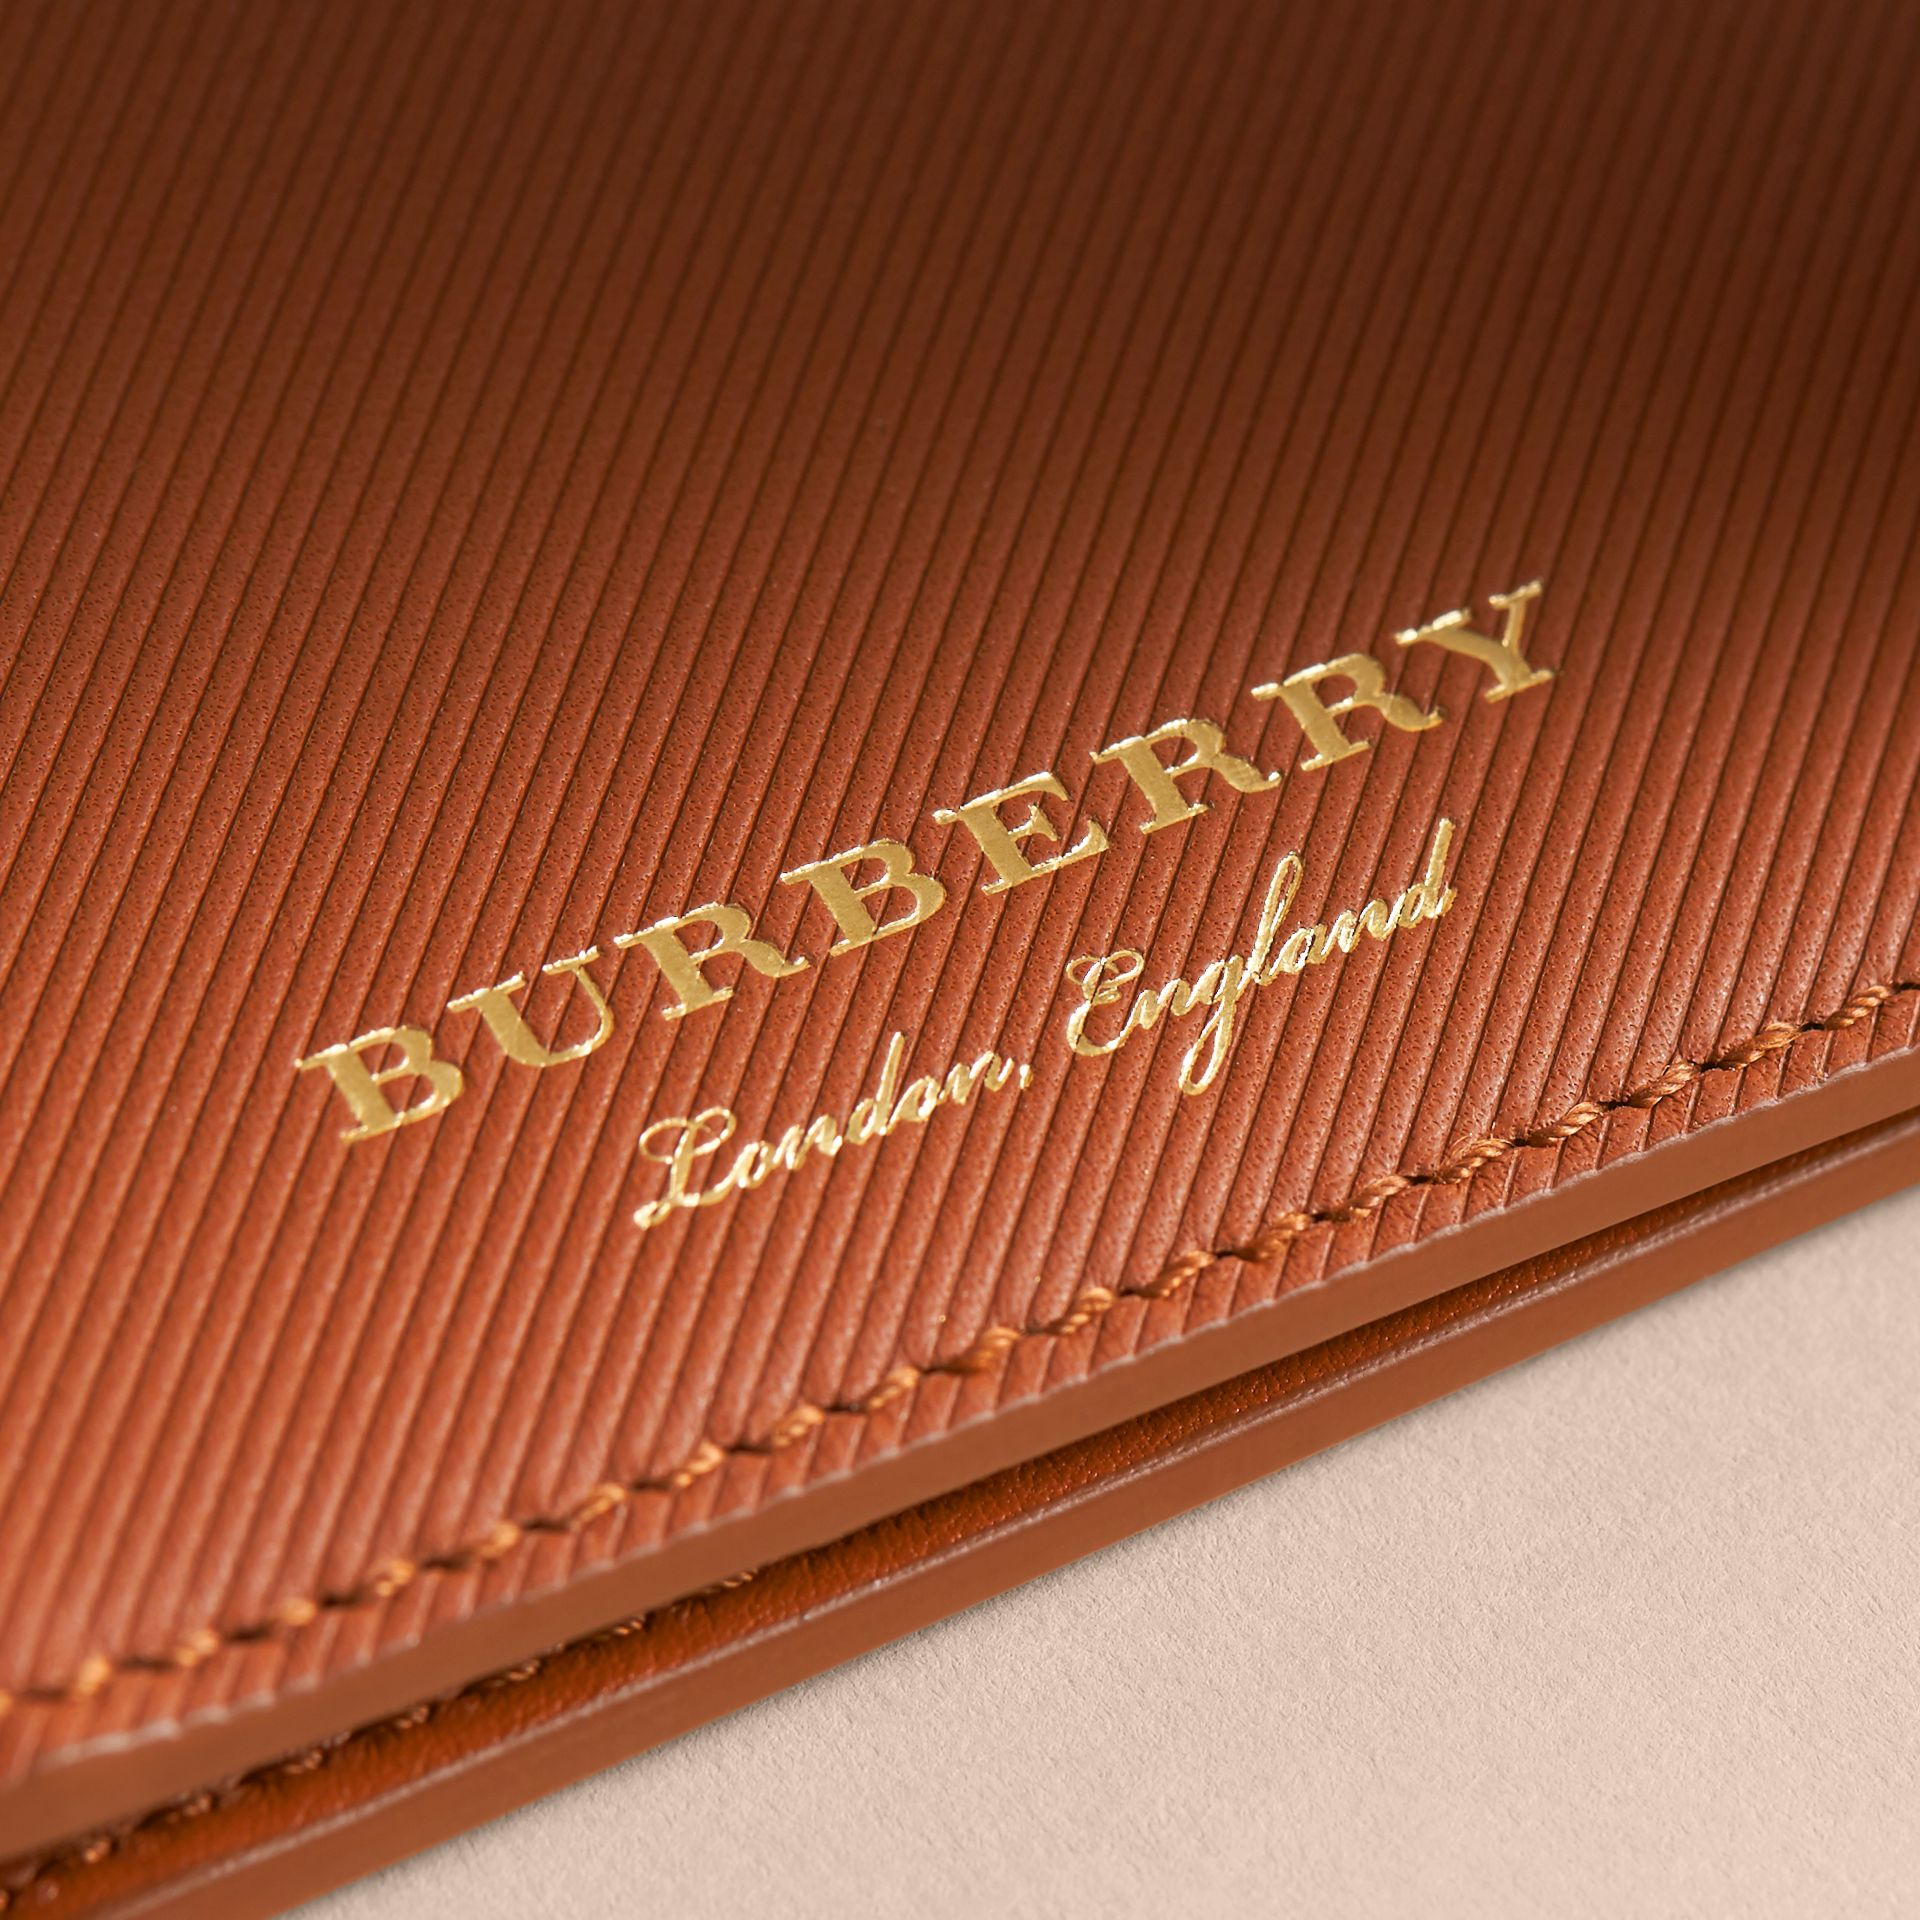 Trench Leather International Bifold Wallet in Tan - Men | Burberry Australia - gallery image 2